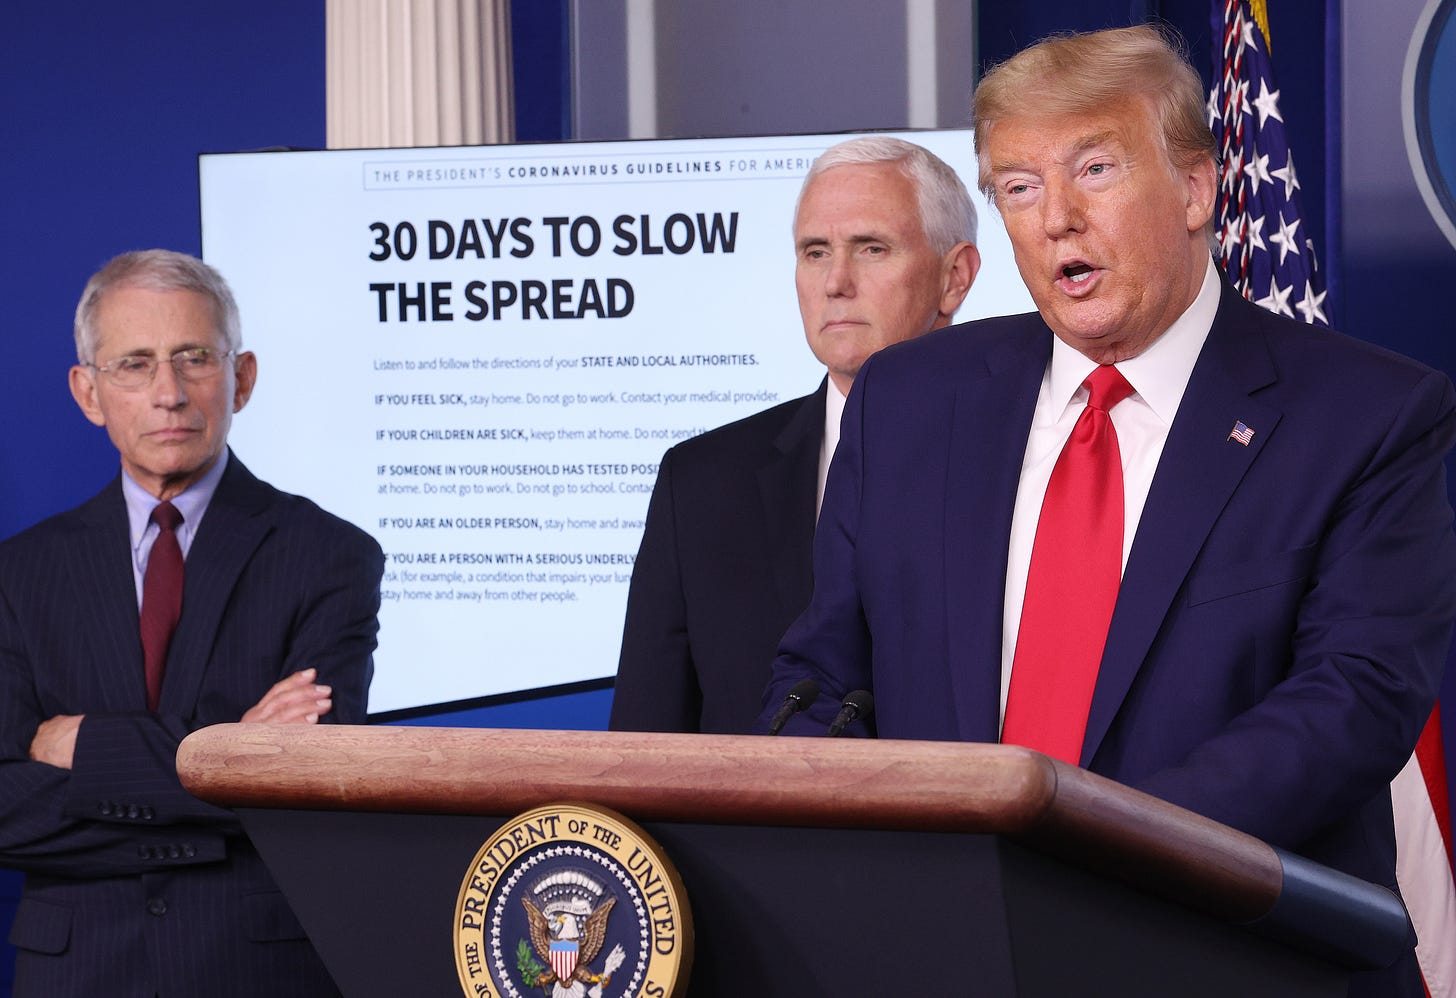 """Dr. Anthony Fauci, Mike Pence, and Donald Trump stand in front of a graphic titled """"30 DAYS TO SLOW THE SPREAD"""" on March 31, 2020"""